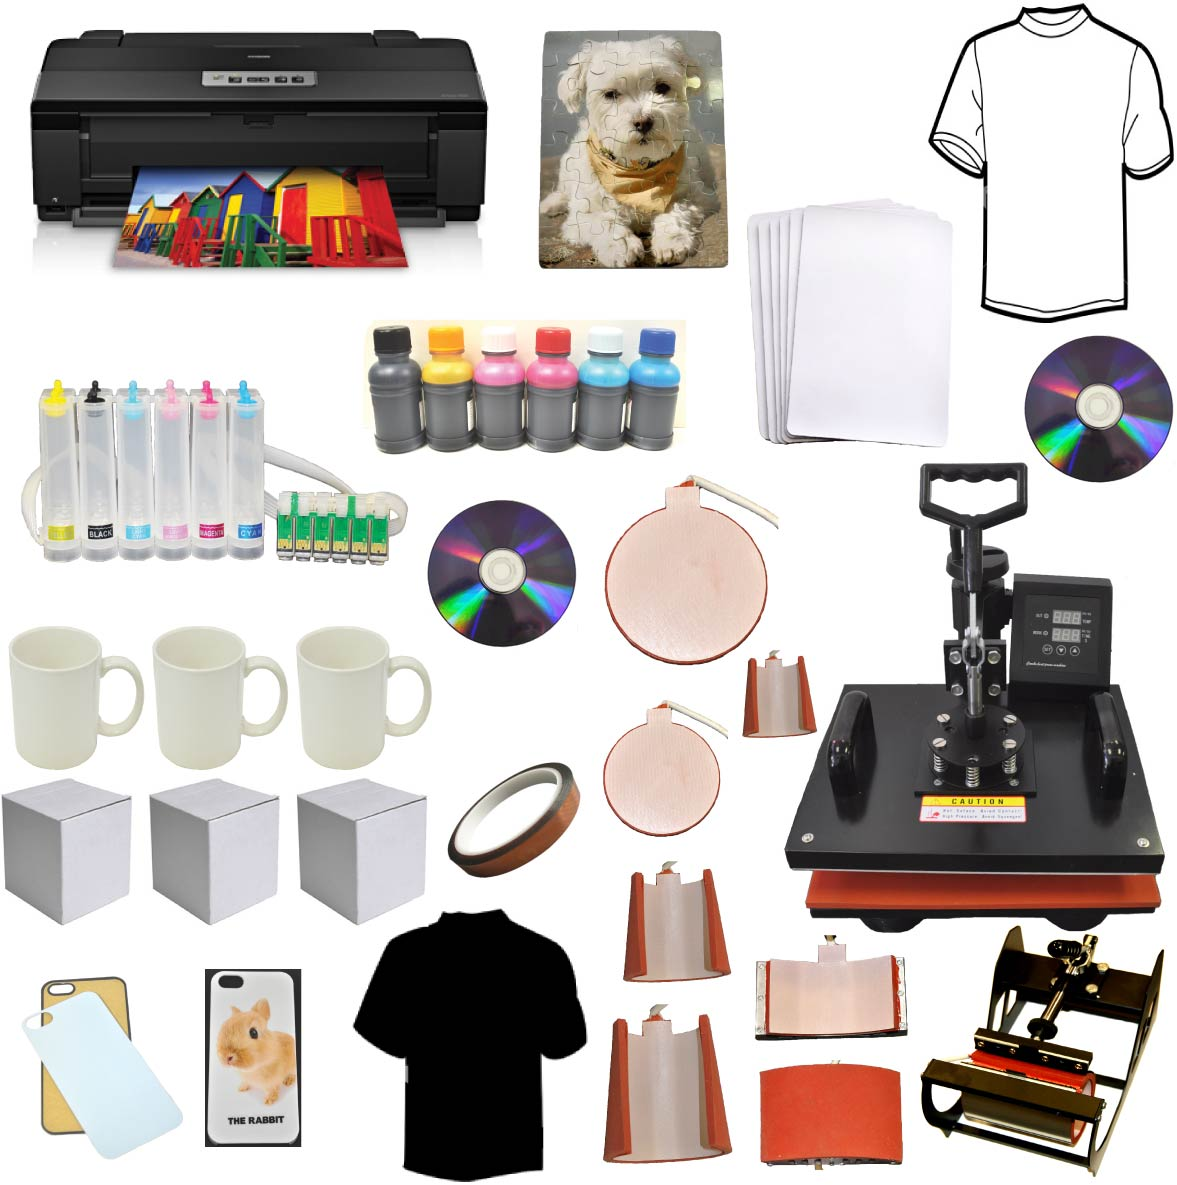 8in1 Sublimation Heat Press,Epson 1430 Printer,Sublimation CISS